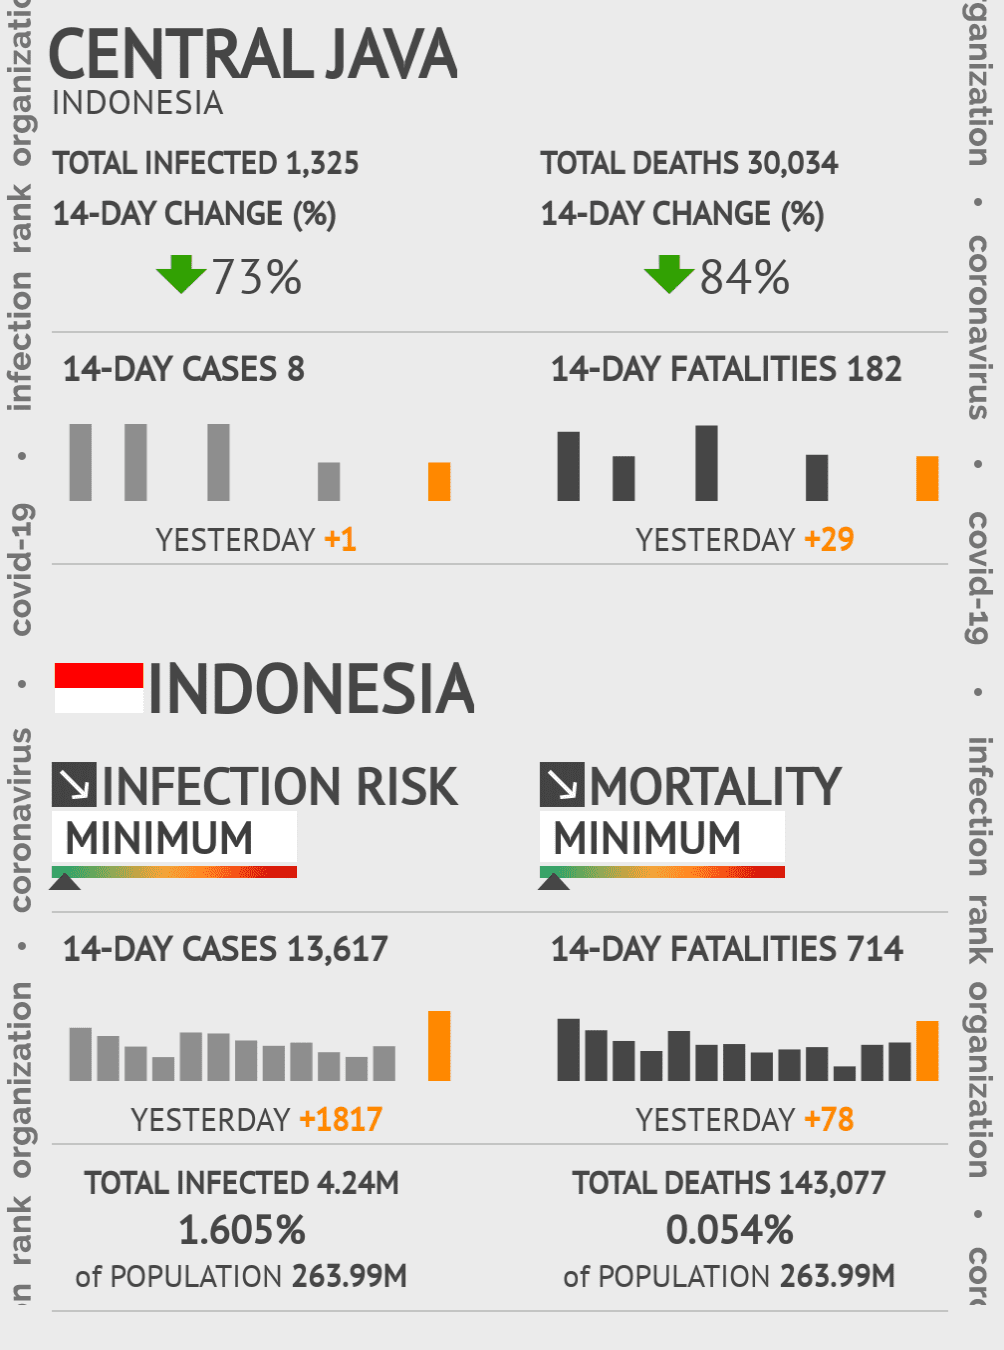 Central Java Coronavirus Covid-19 Risk of Infection on March 07, 2021